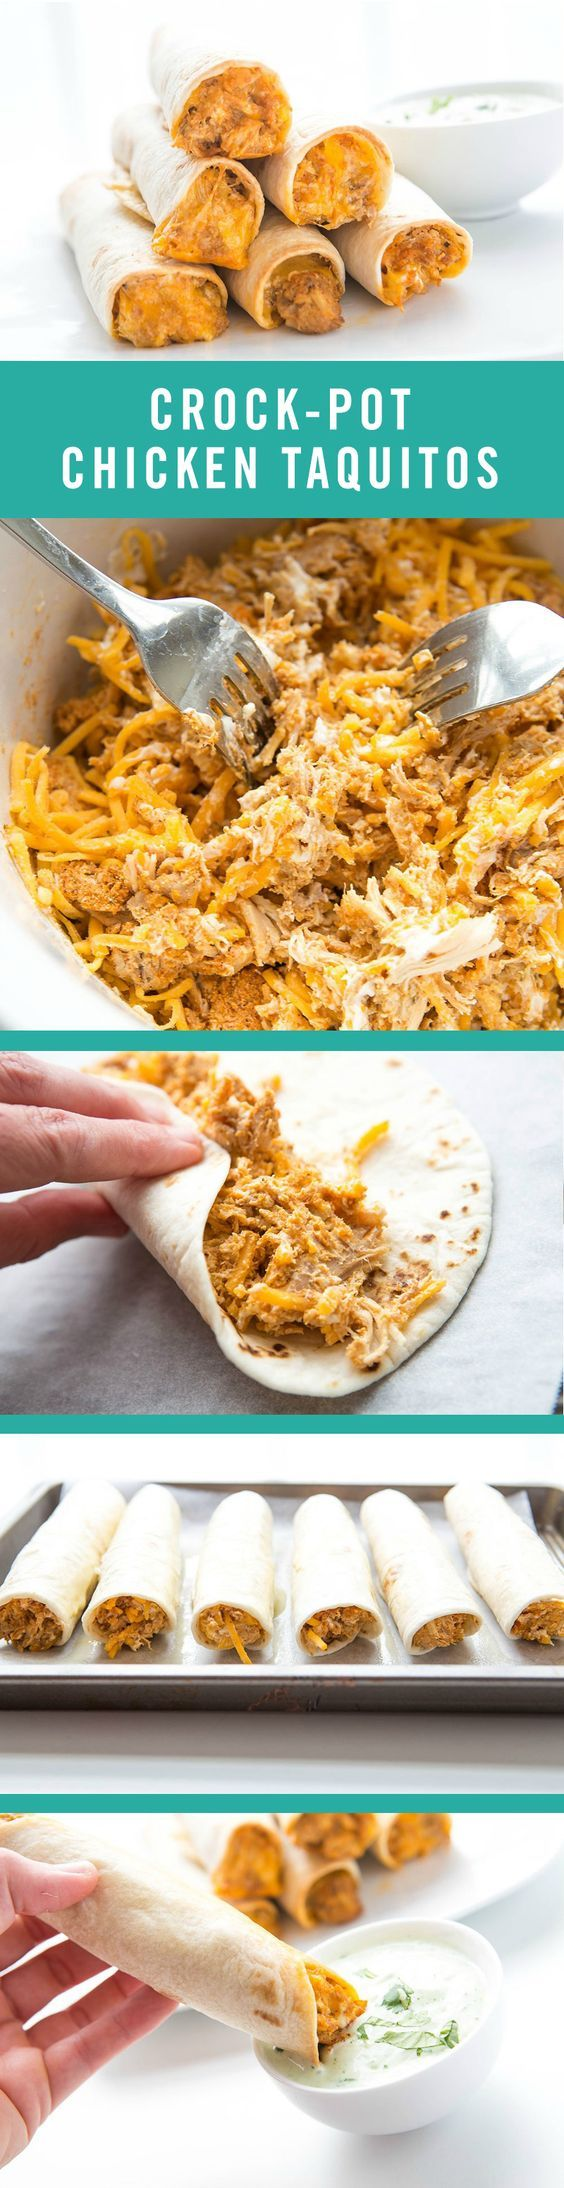 Kid-friendly meets parental appetites with this tasty and simple recipe. These…